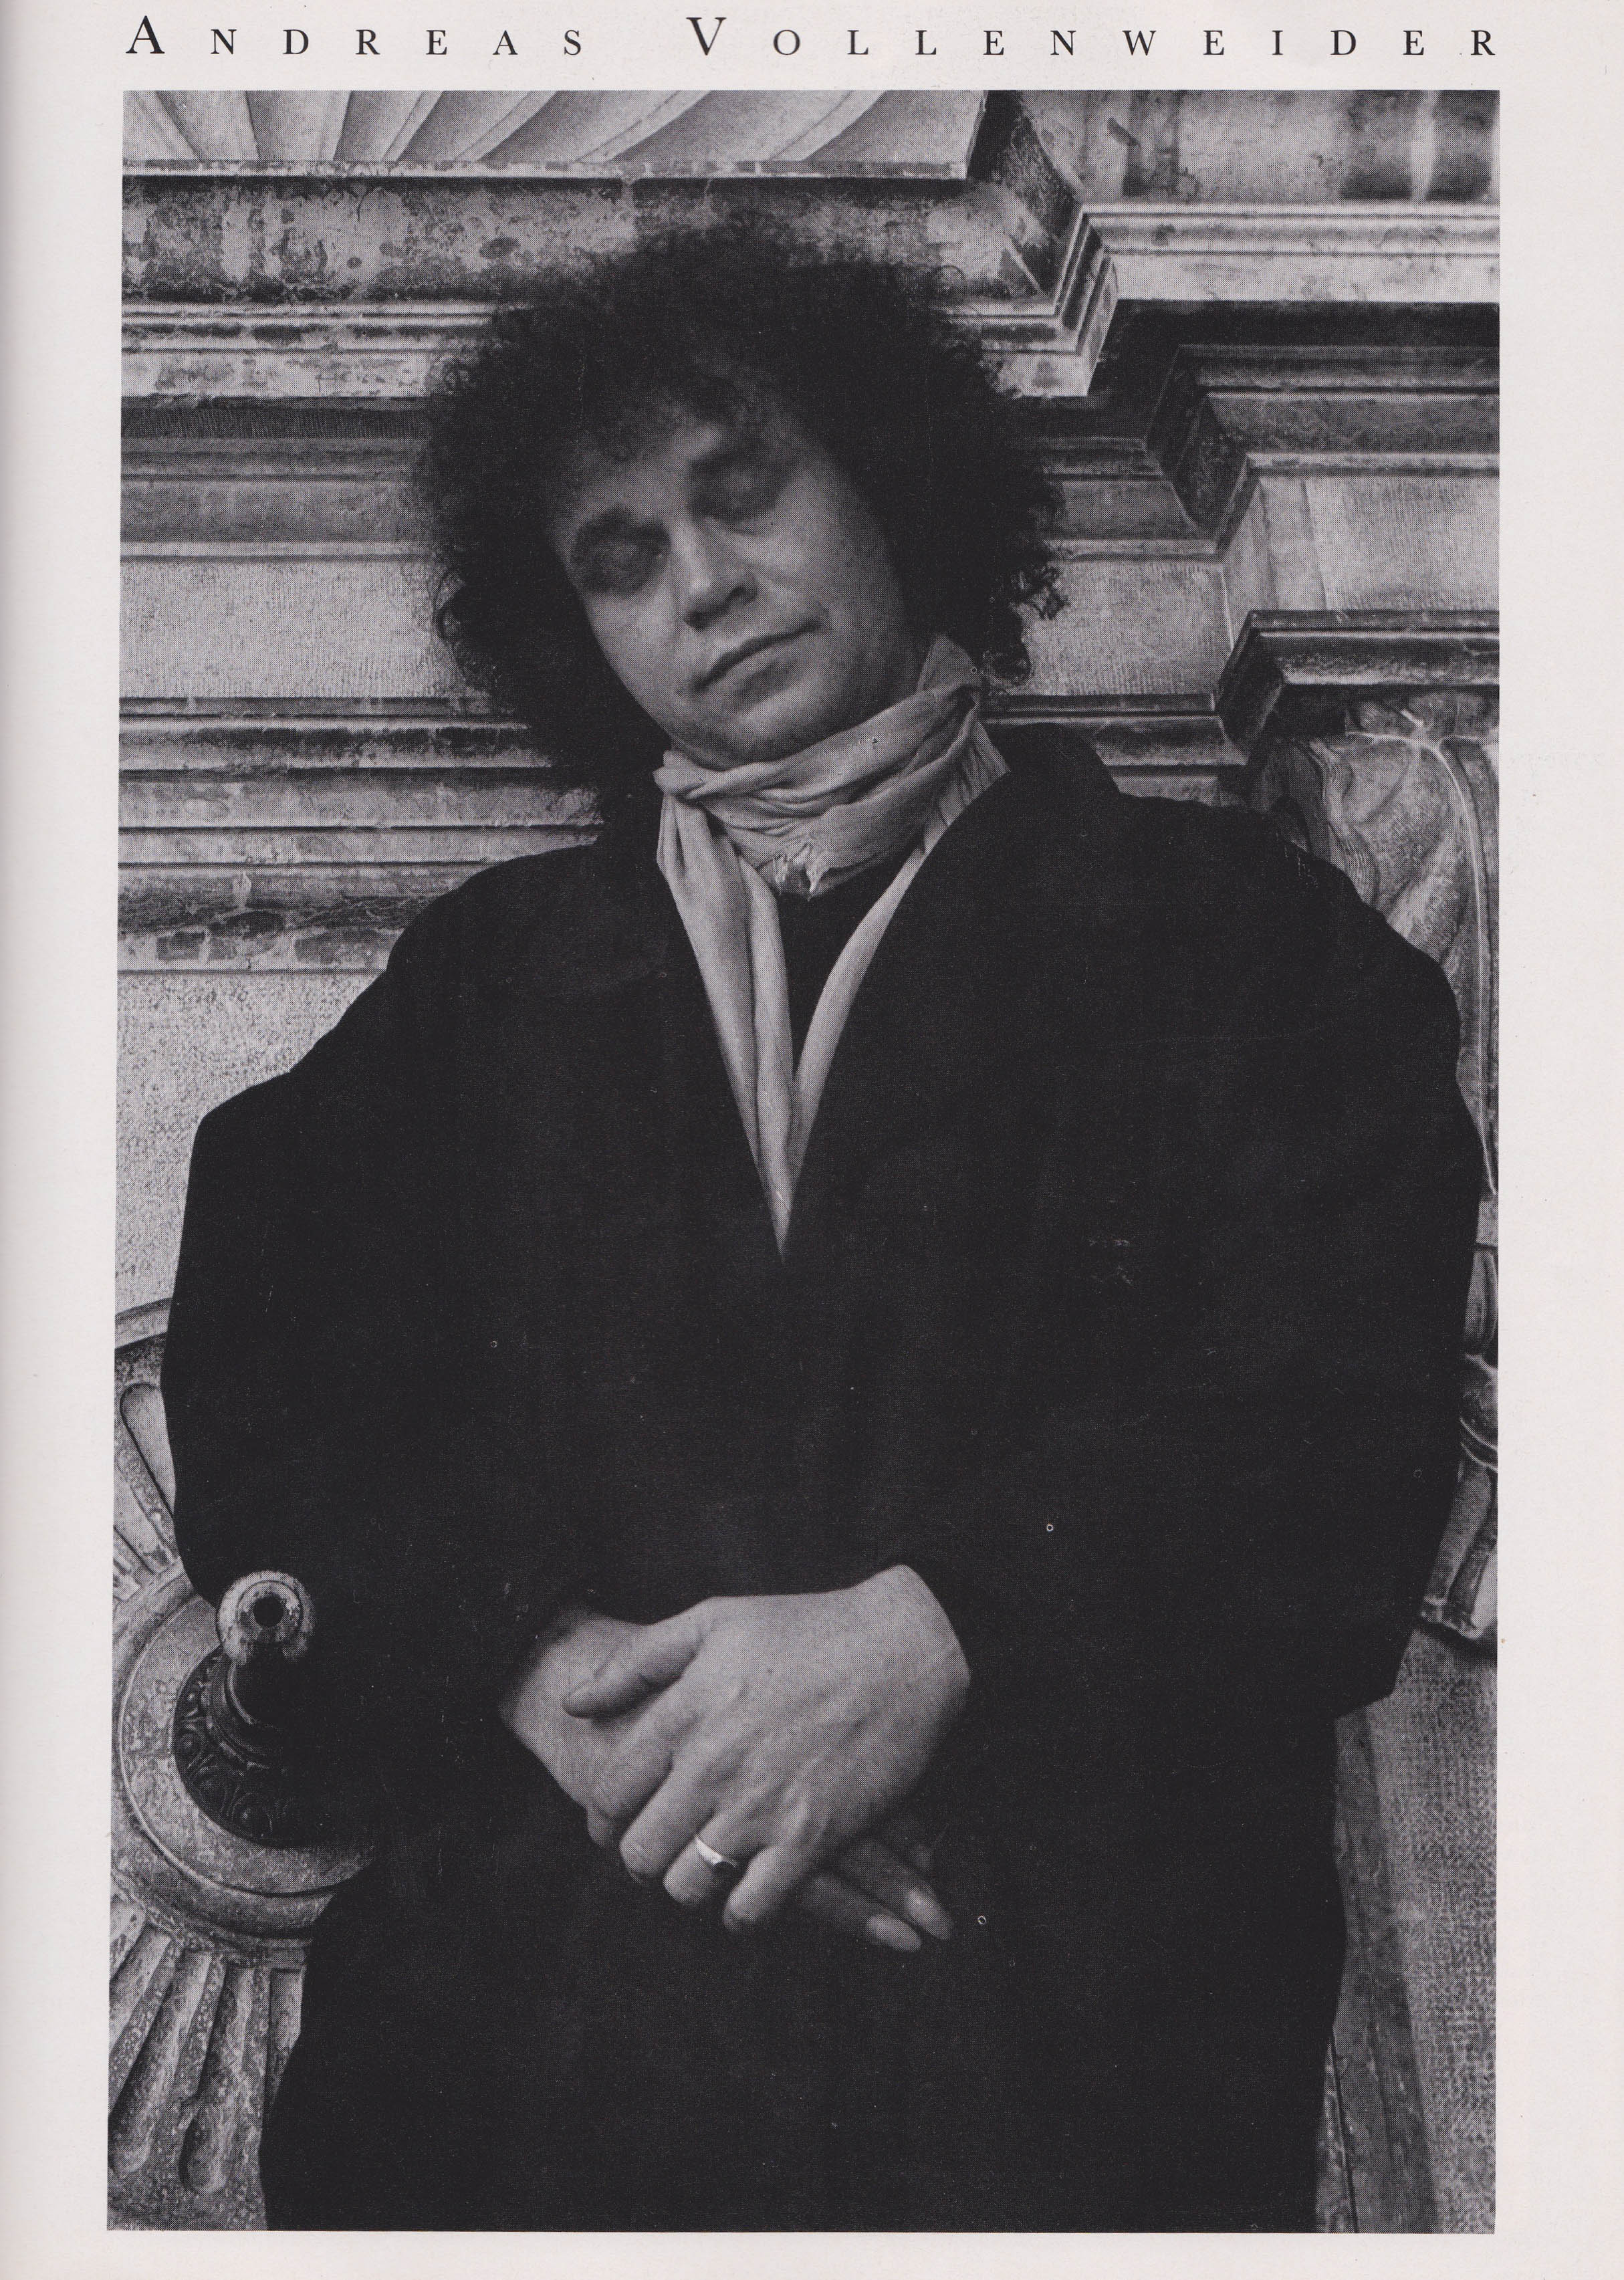 Andreas Vollenweider, The Face, January, 1987, David Toop, Steve Champion